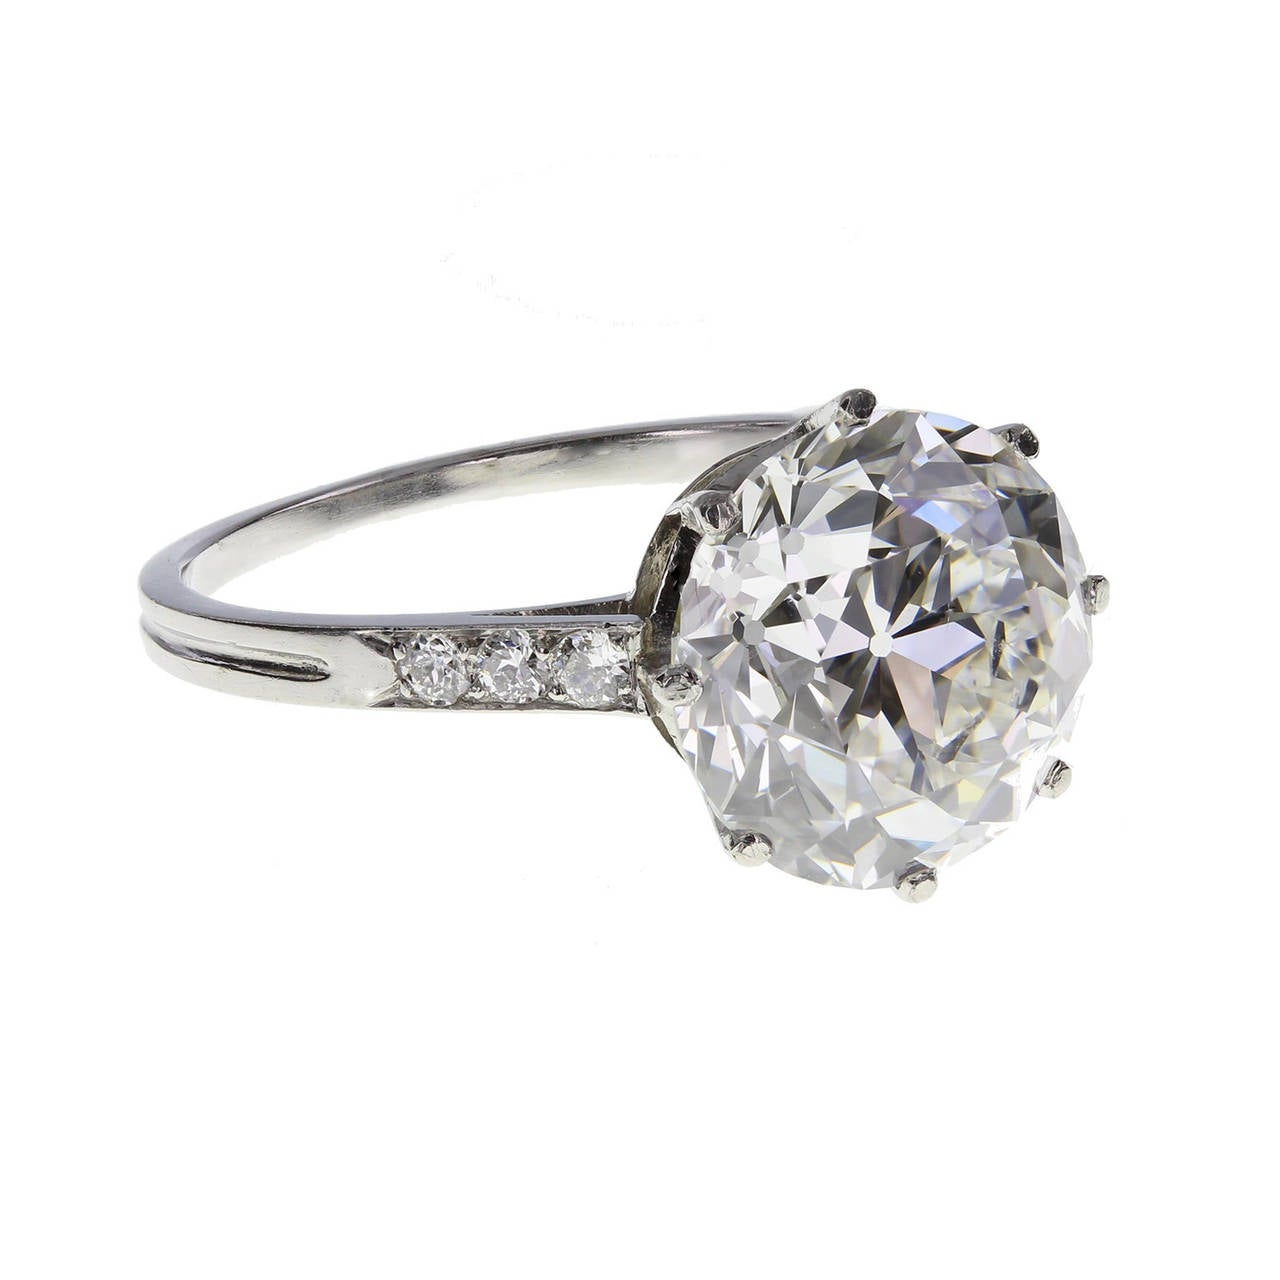 A 3.91 carat brilliant-cut diamond in a classic eight-claw setting with diamond set shoulders. All platinum. Signed Boucheron Paris and accompanied by an HRD certificate stating that the diamond is 3.91 carats, E colour and SI1 clarity. An exquisite